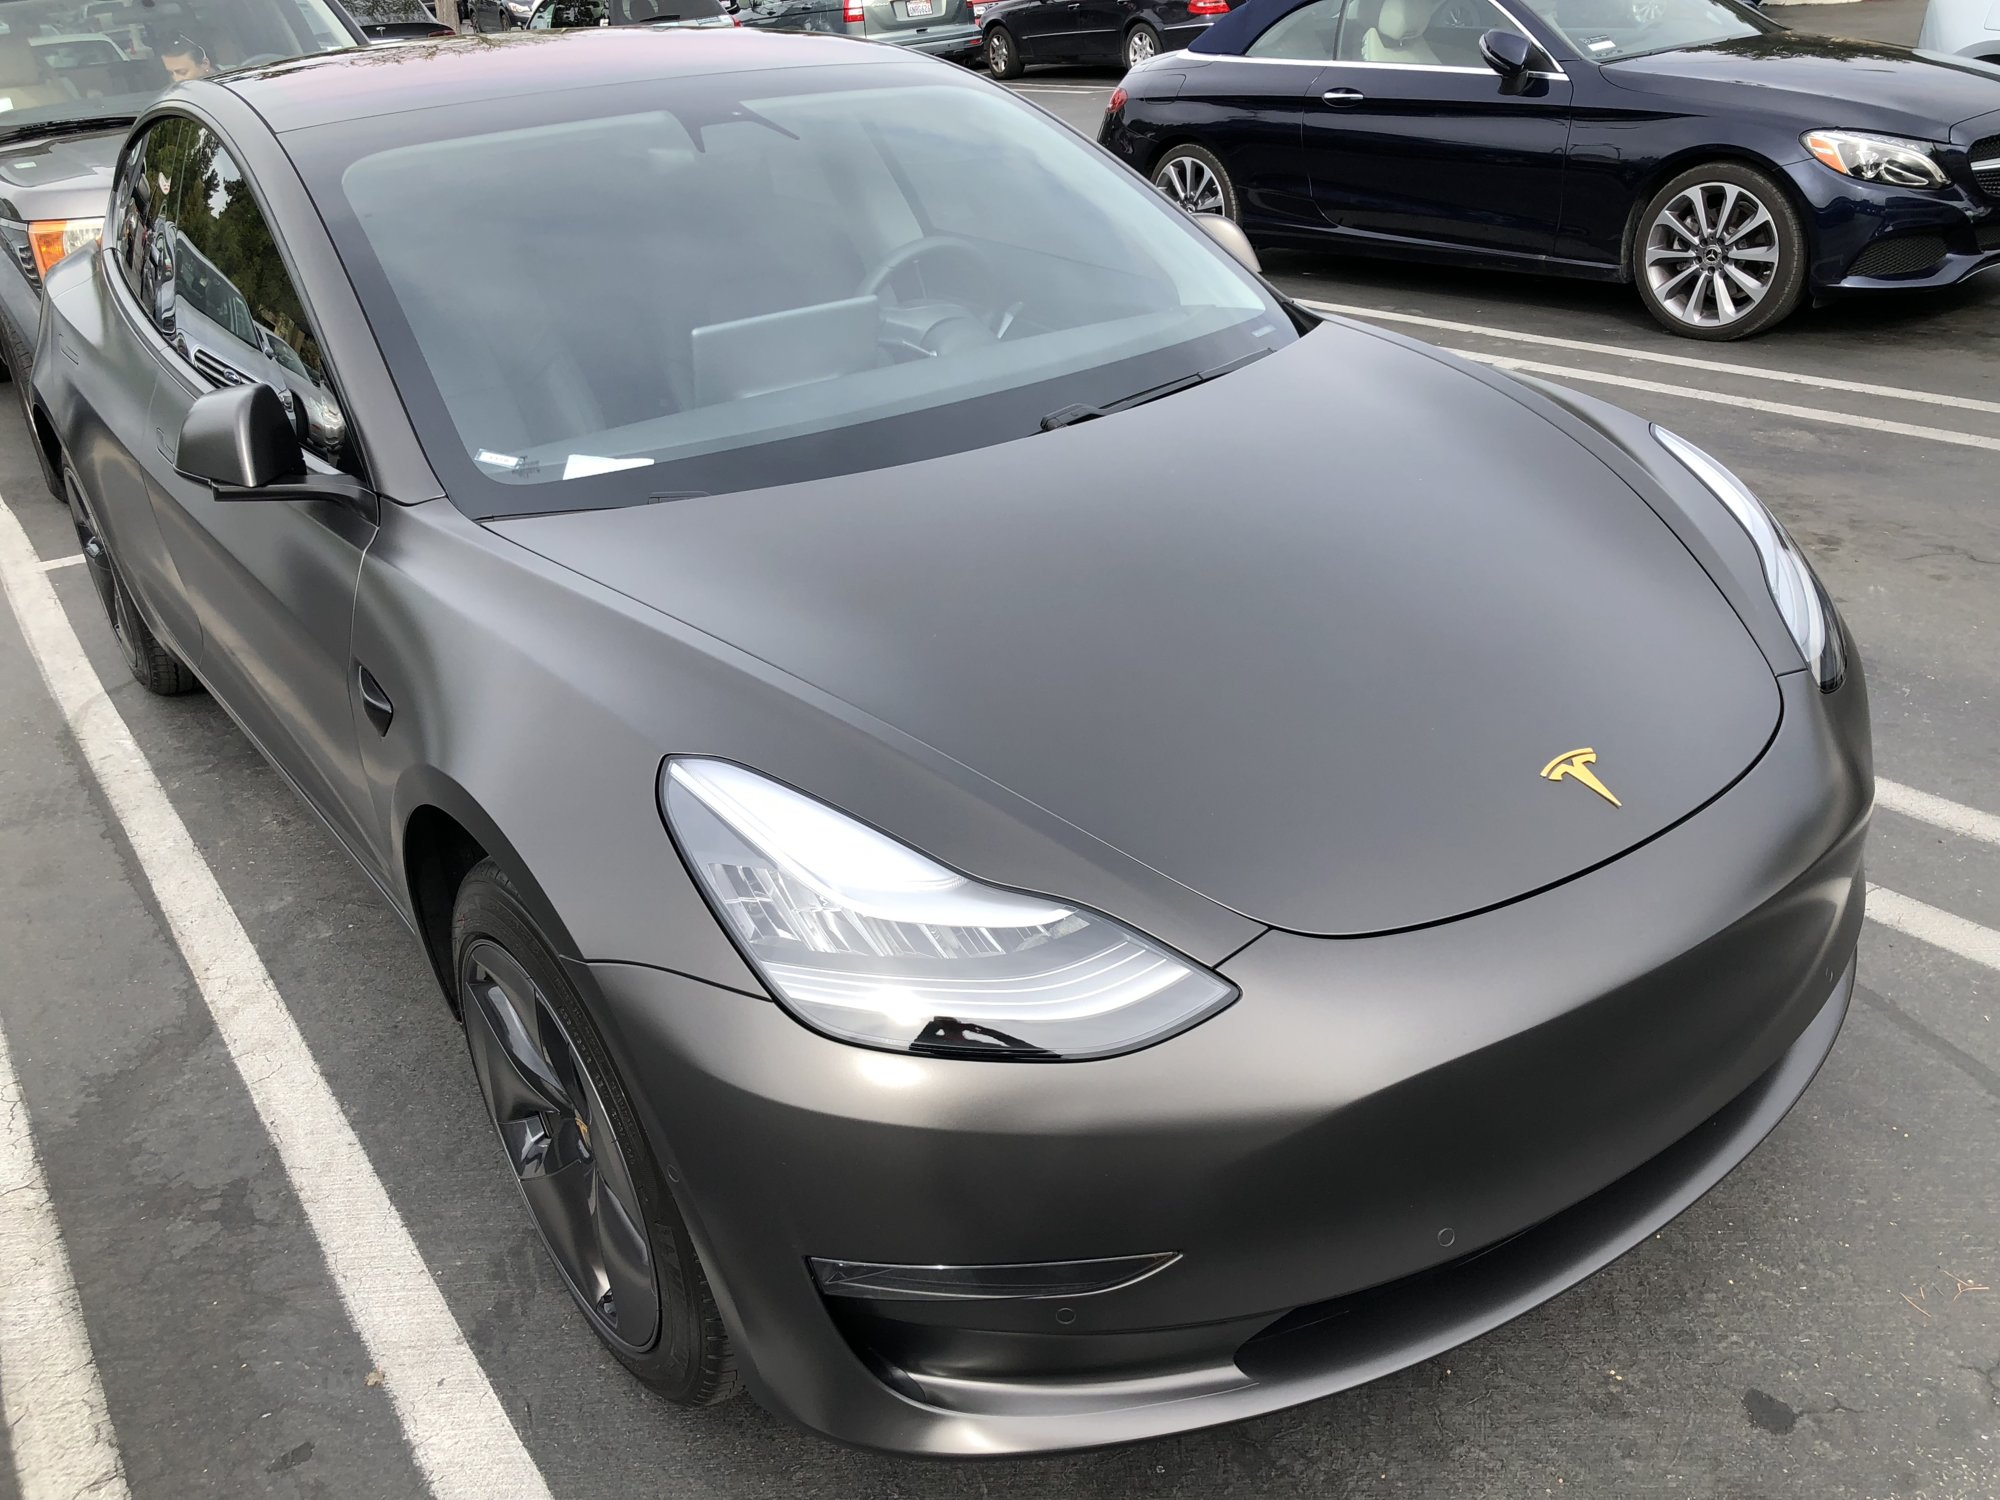 Sating Gray Wrapped Tesla Model 3 - Front View